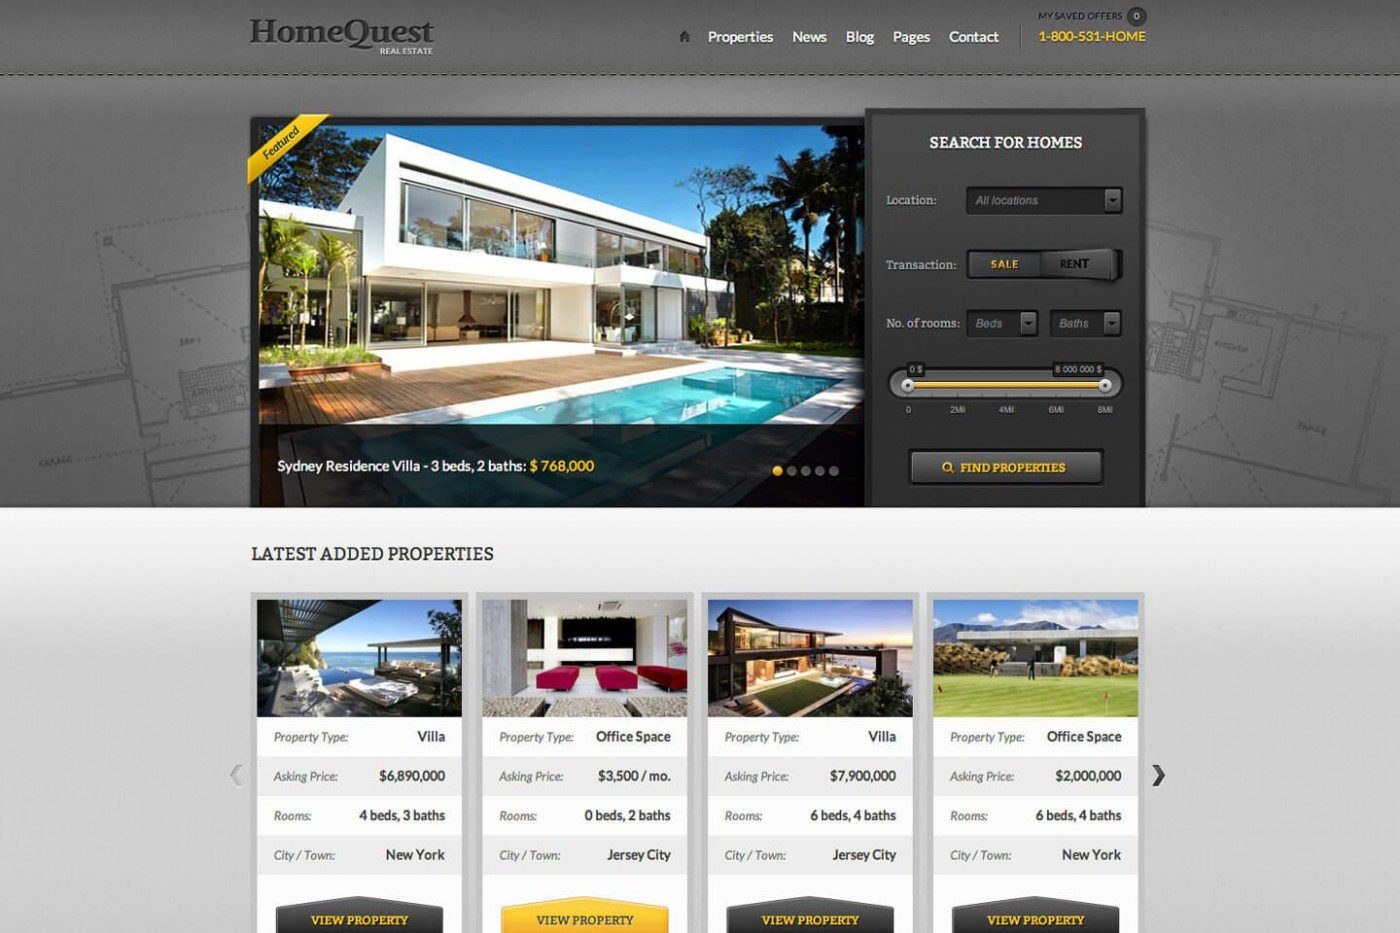 008 Impressive Real Estate Template Wordpres High Def  Homepres - Theme Free Download Realtyspace1400